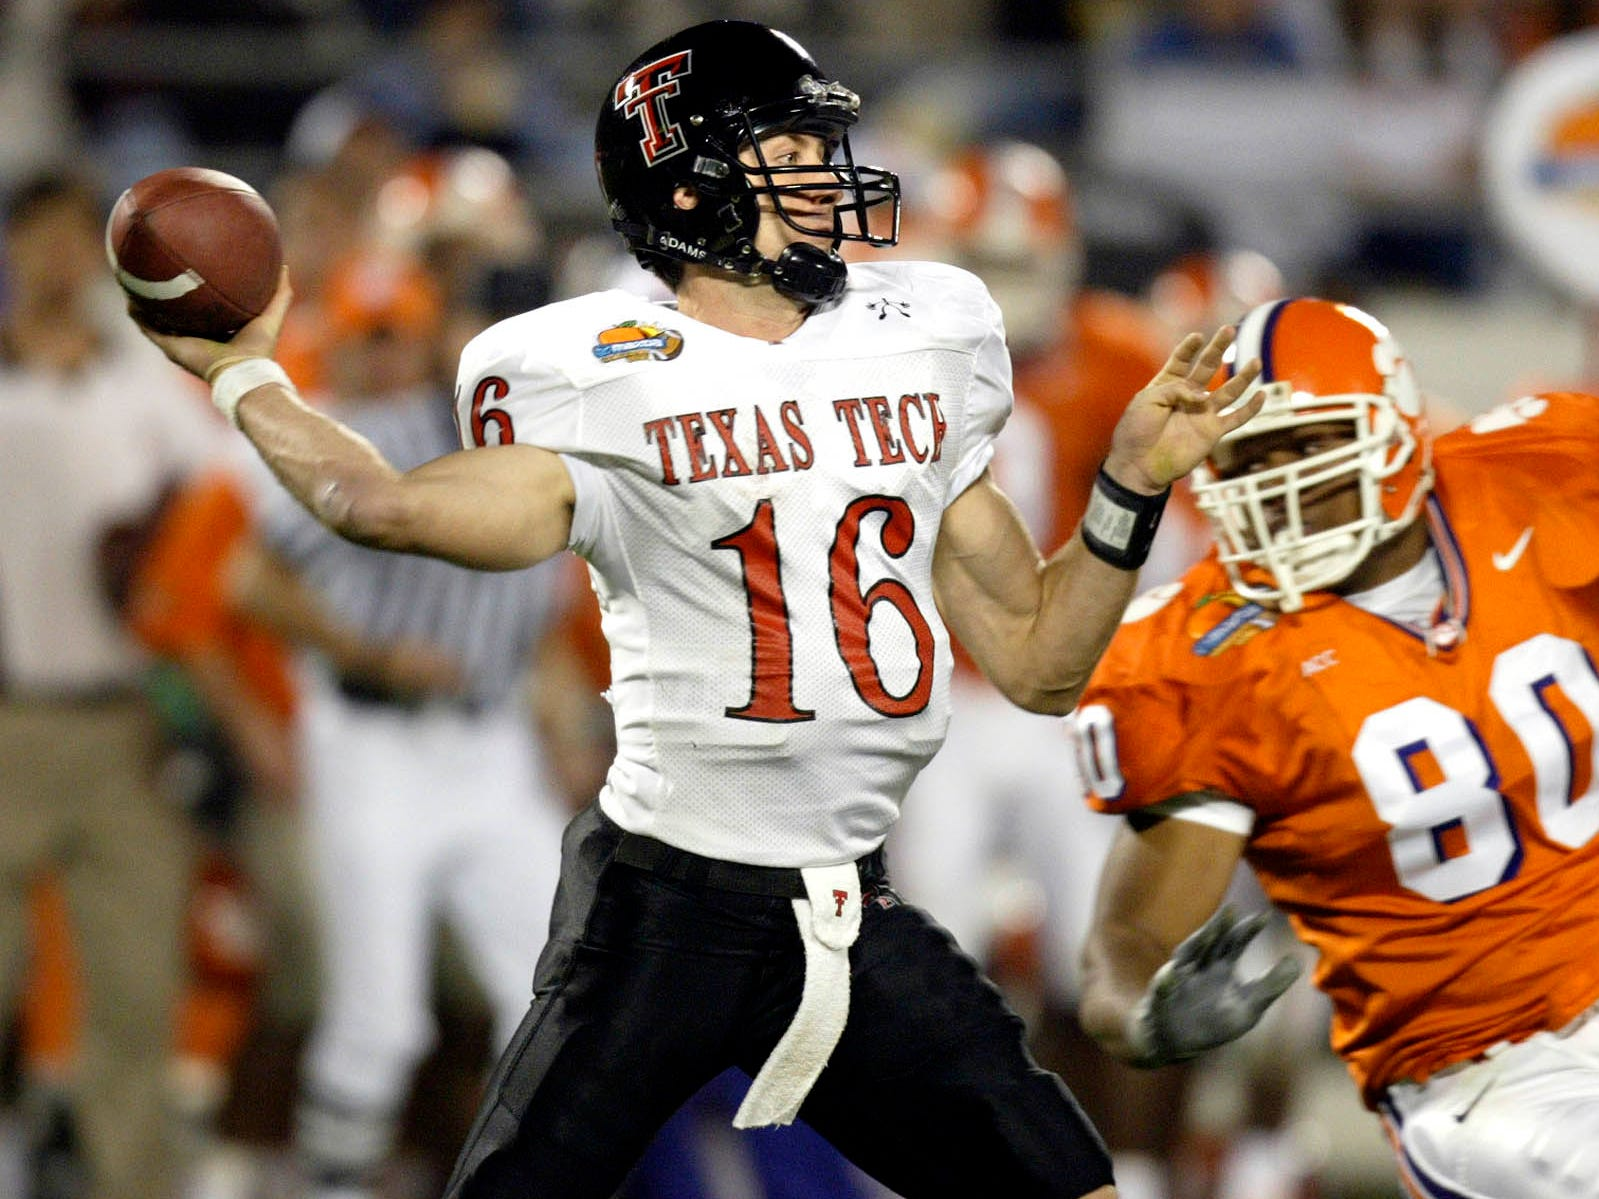 Texas Tech quarterback Kliff Kingsbury throws downfield against Clemson at the Mazda Tangerine Bowl on Monday, Dec. 23, 2002 in Orlando, Fla. Kingsbury threw for 375 and three touchdowns as Texas Tech defeated Clemson 55-15.